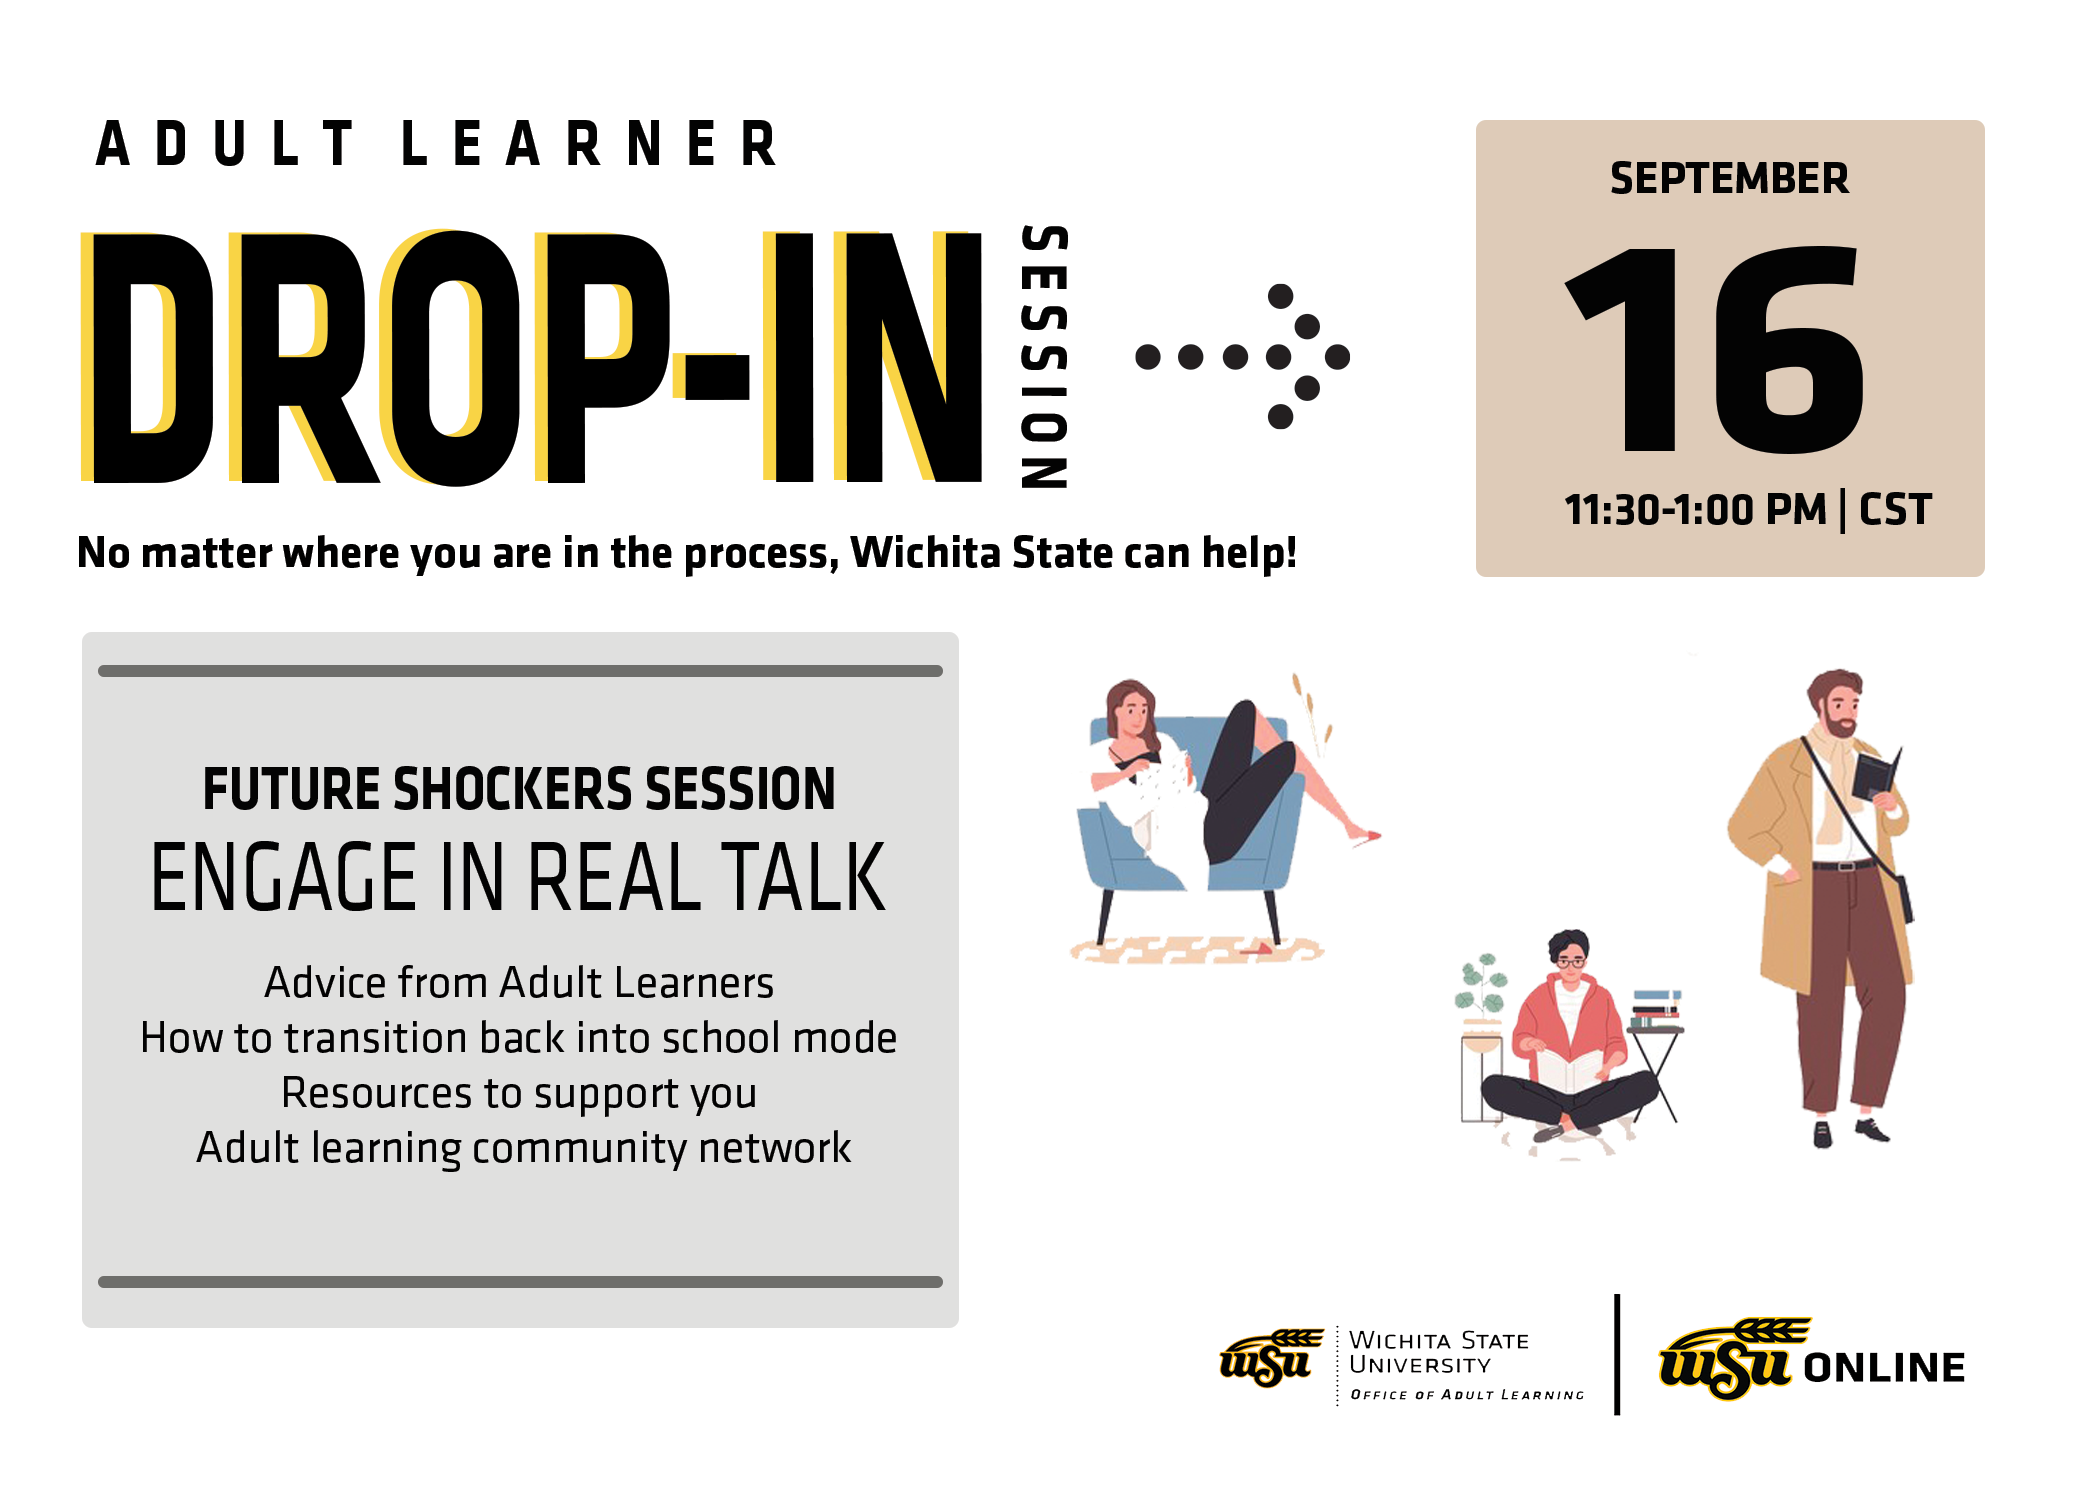 Adult Learing Drop-In Sessions